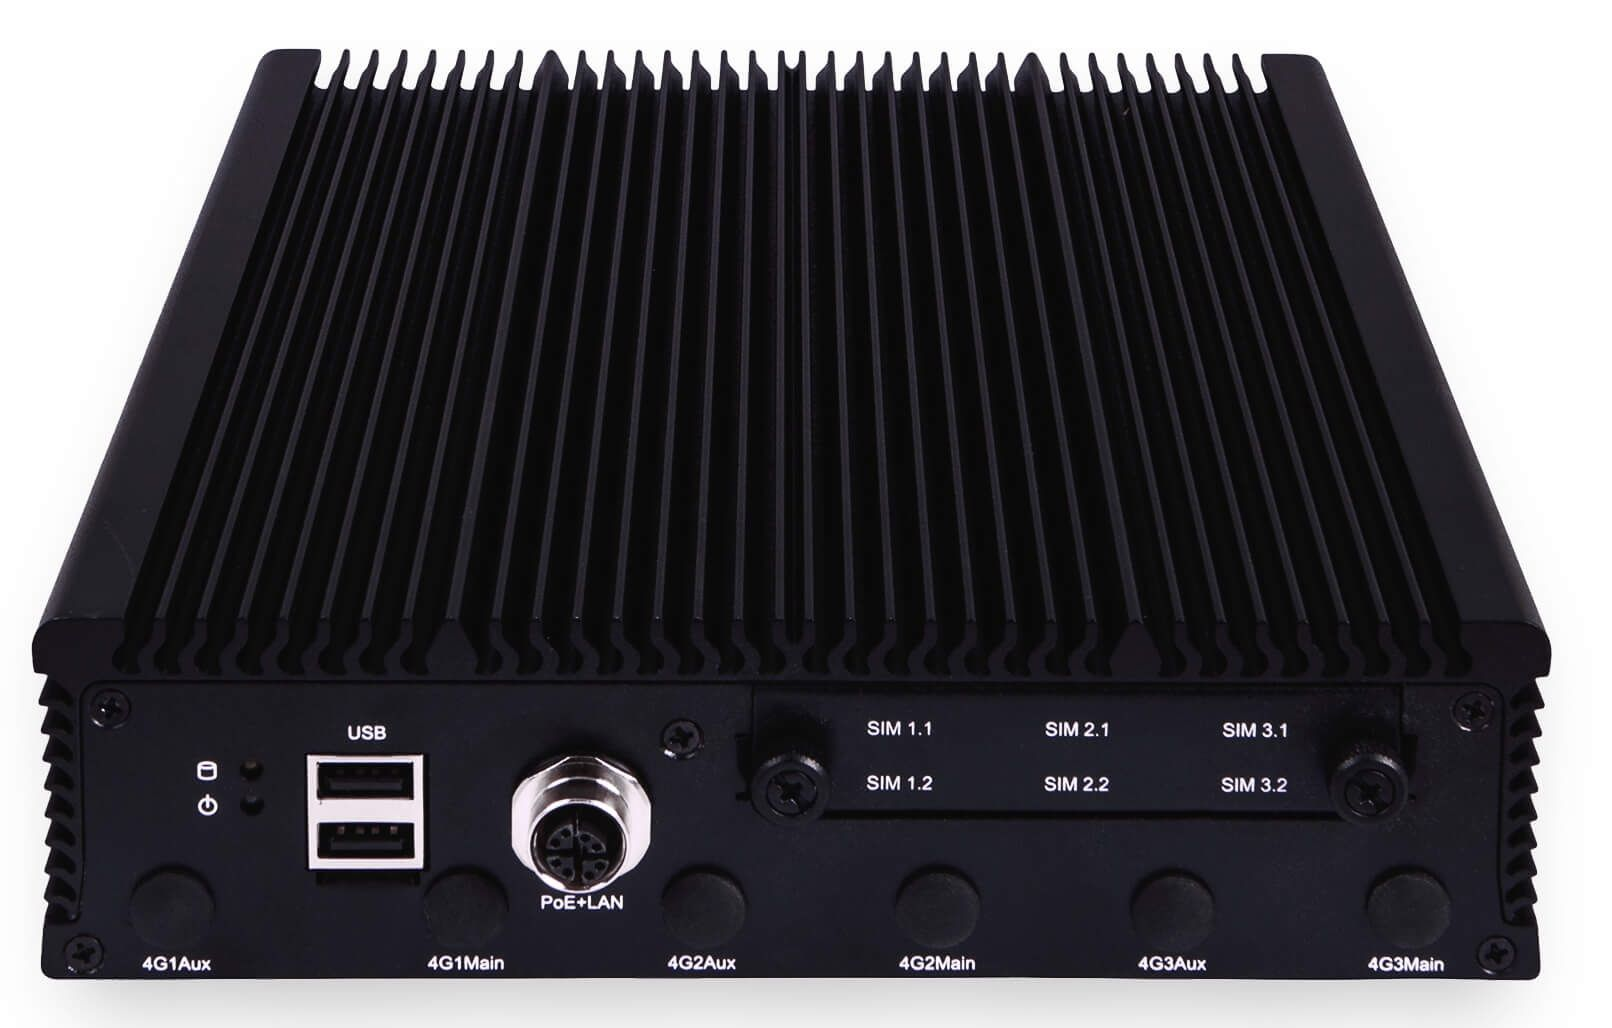 Celerway Arcus: Powerful and rugged router for your most demanding on-the-go connectivity requirements, with 5G support